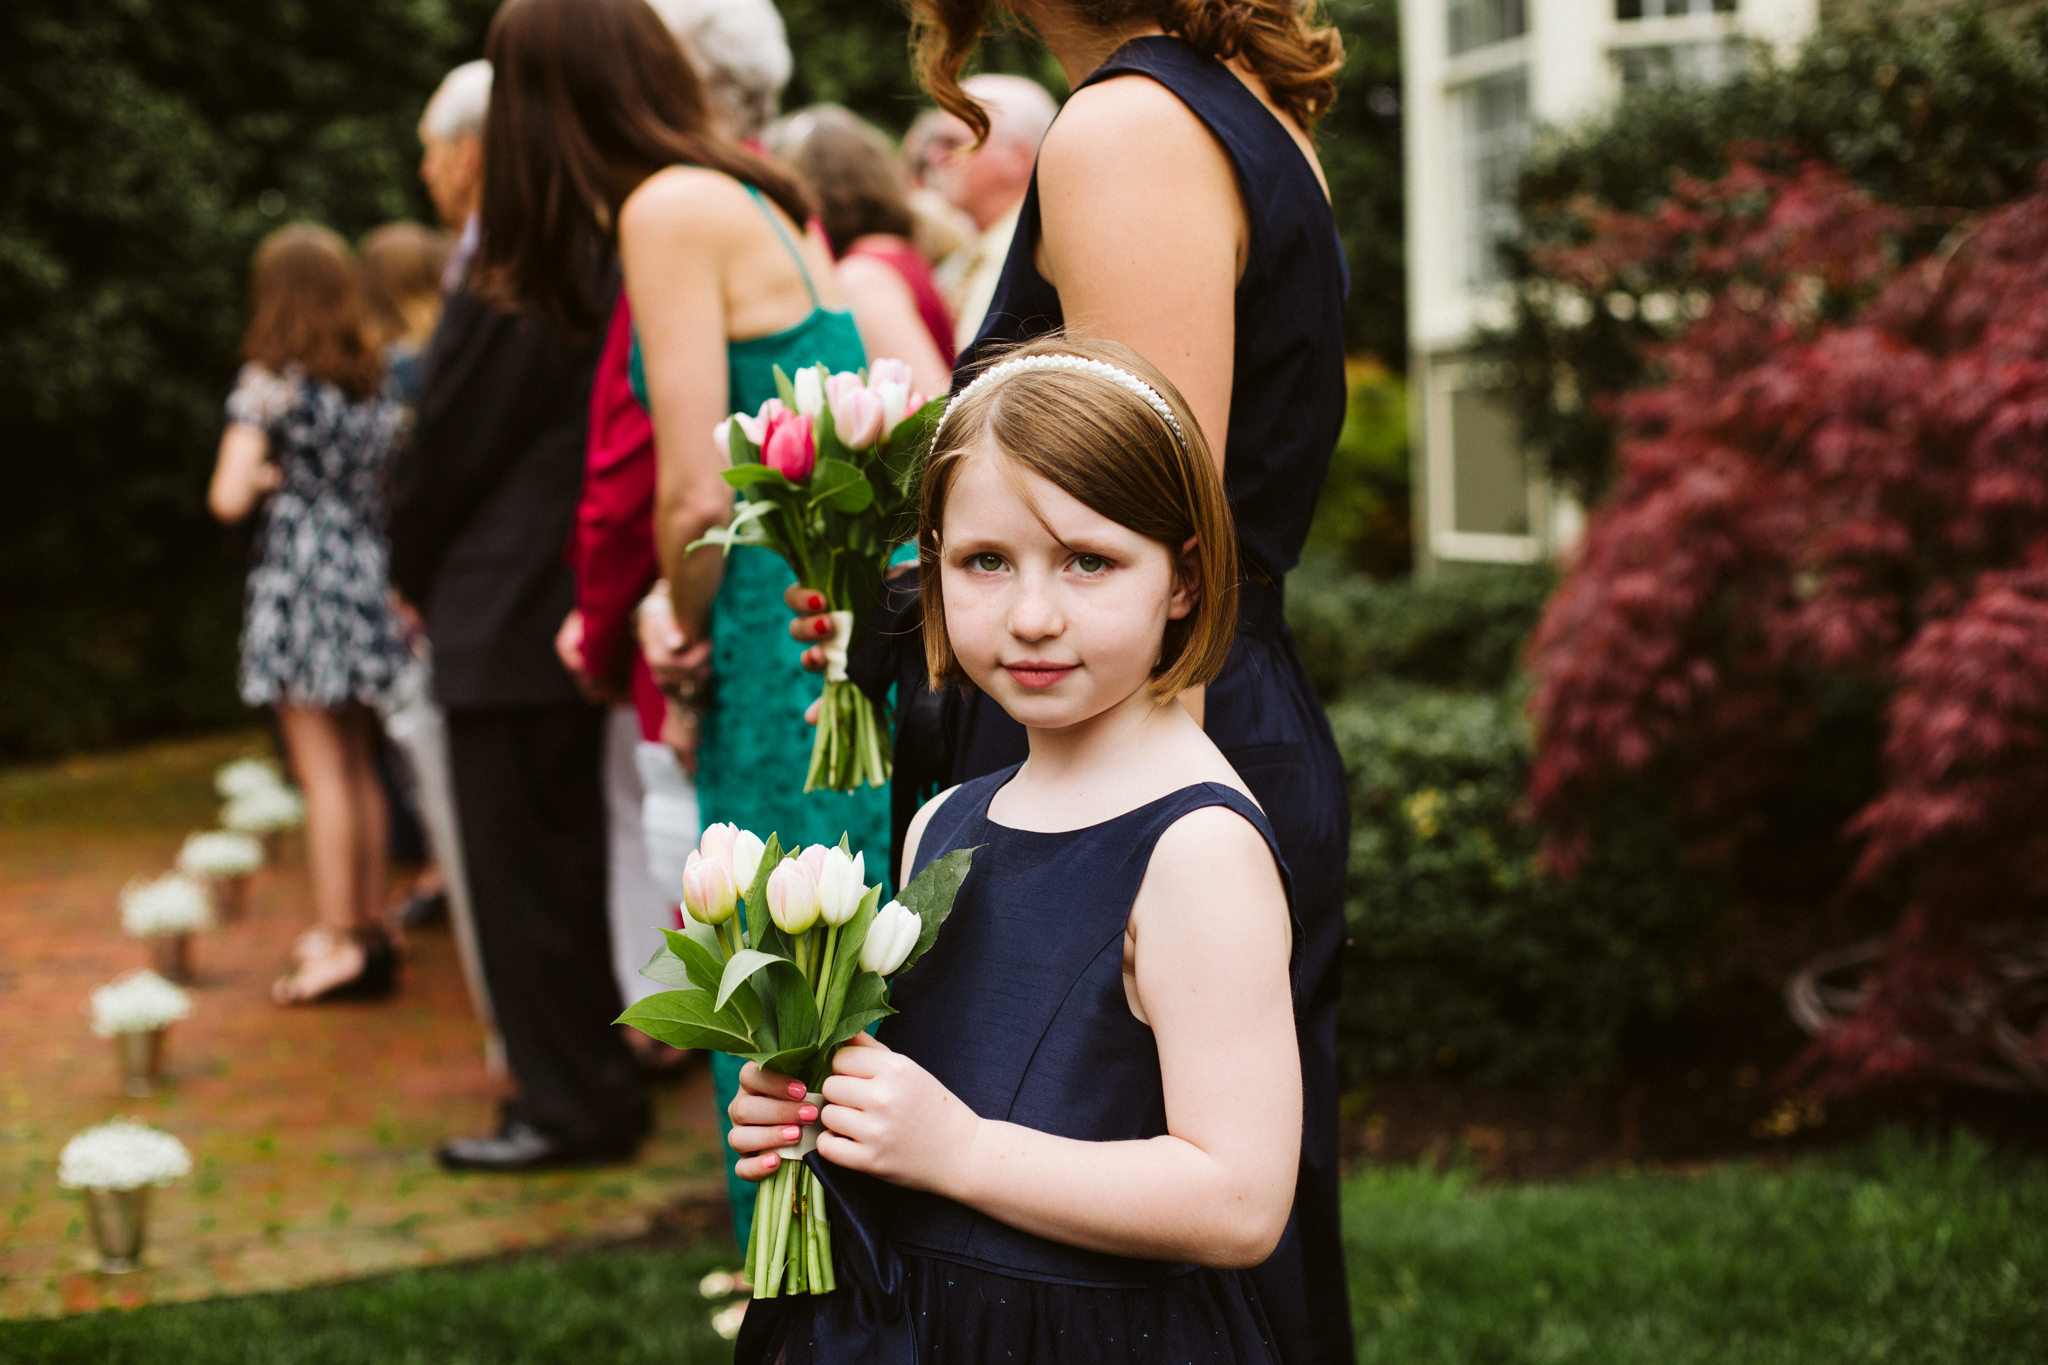 cook_wedding_richmond_virginia_rebecca_burt_photography-25.jpg